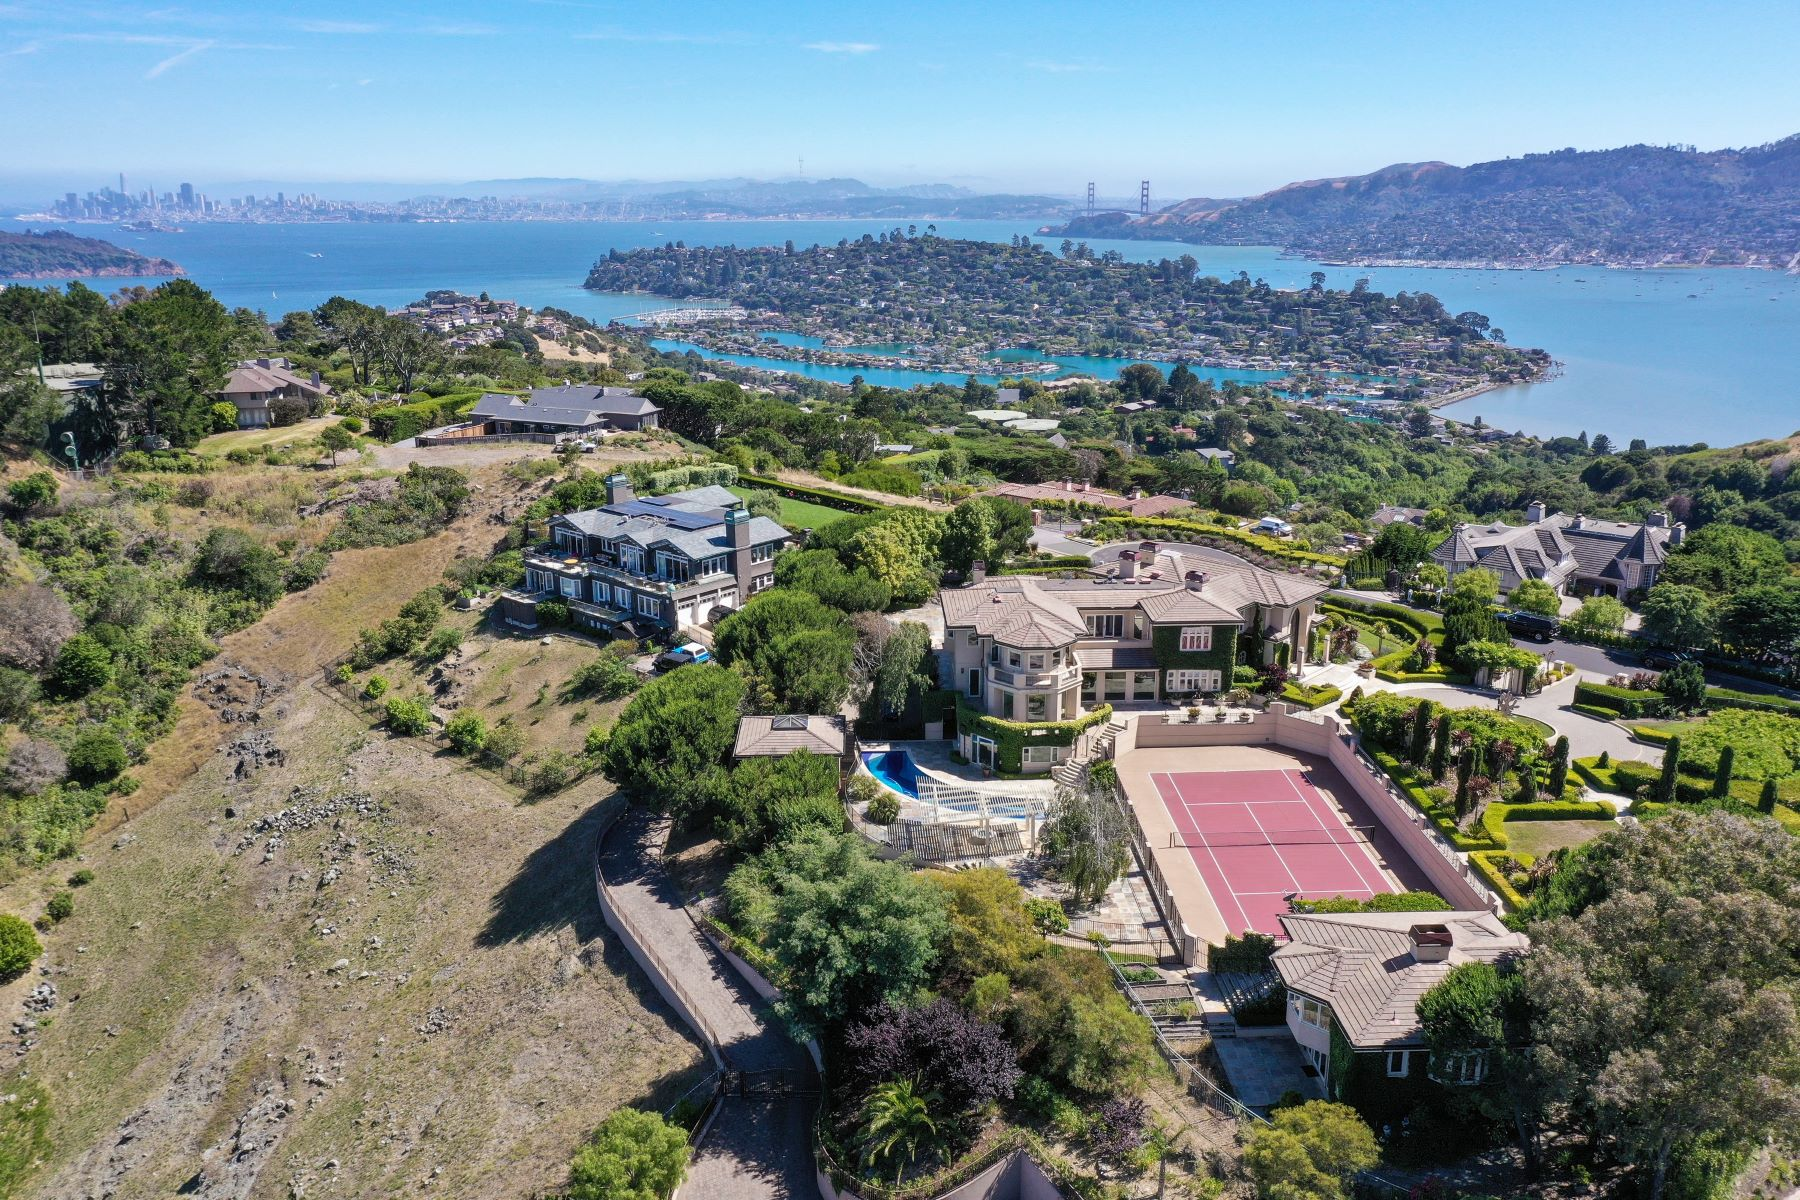 Single Family Homes for Sale at Spectacular Prime Estate 185 Gilmartin Drive, Tiburon, California 94920 United States